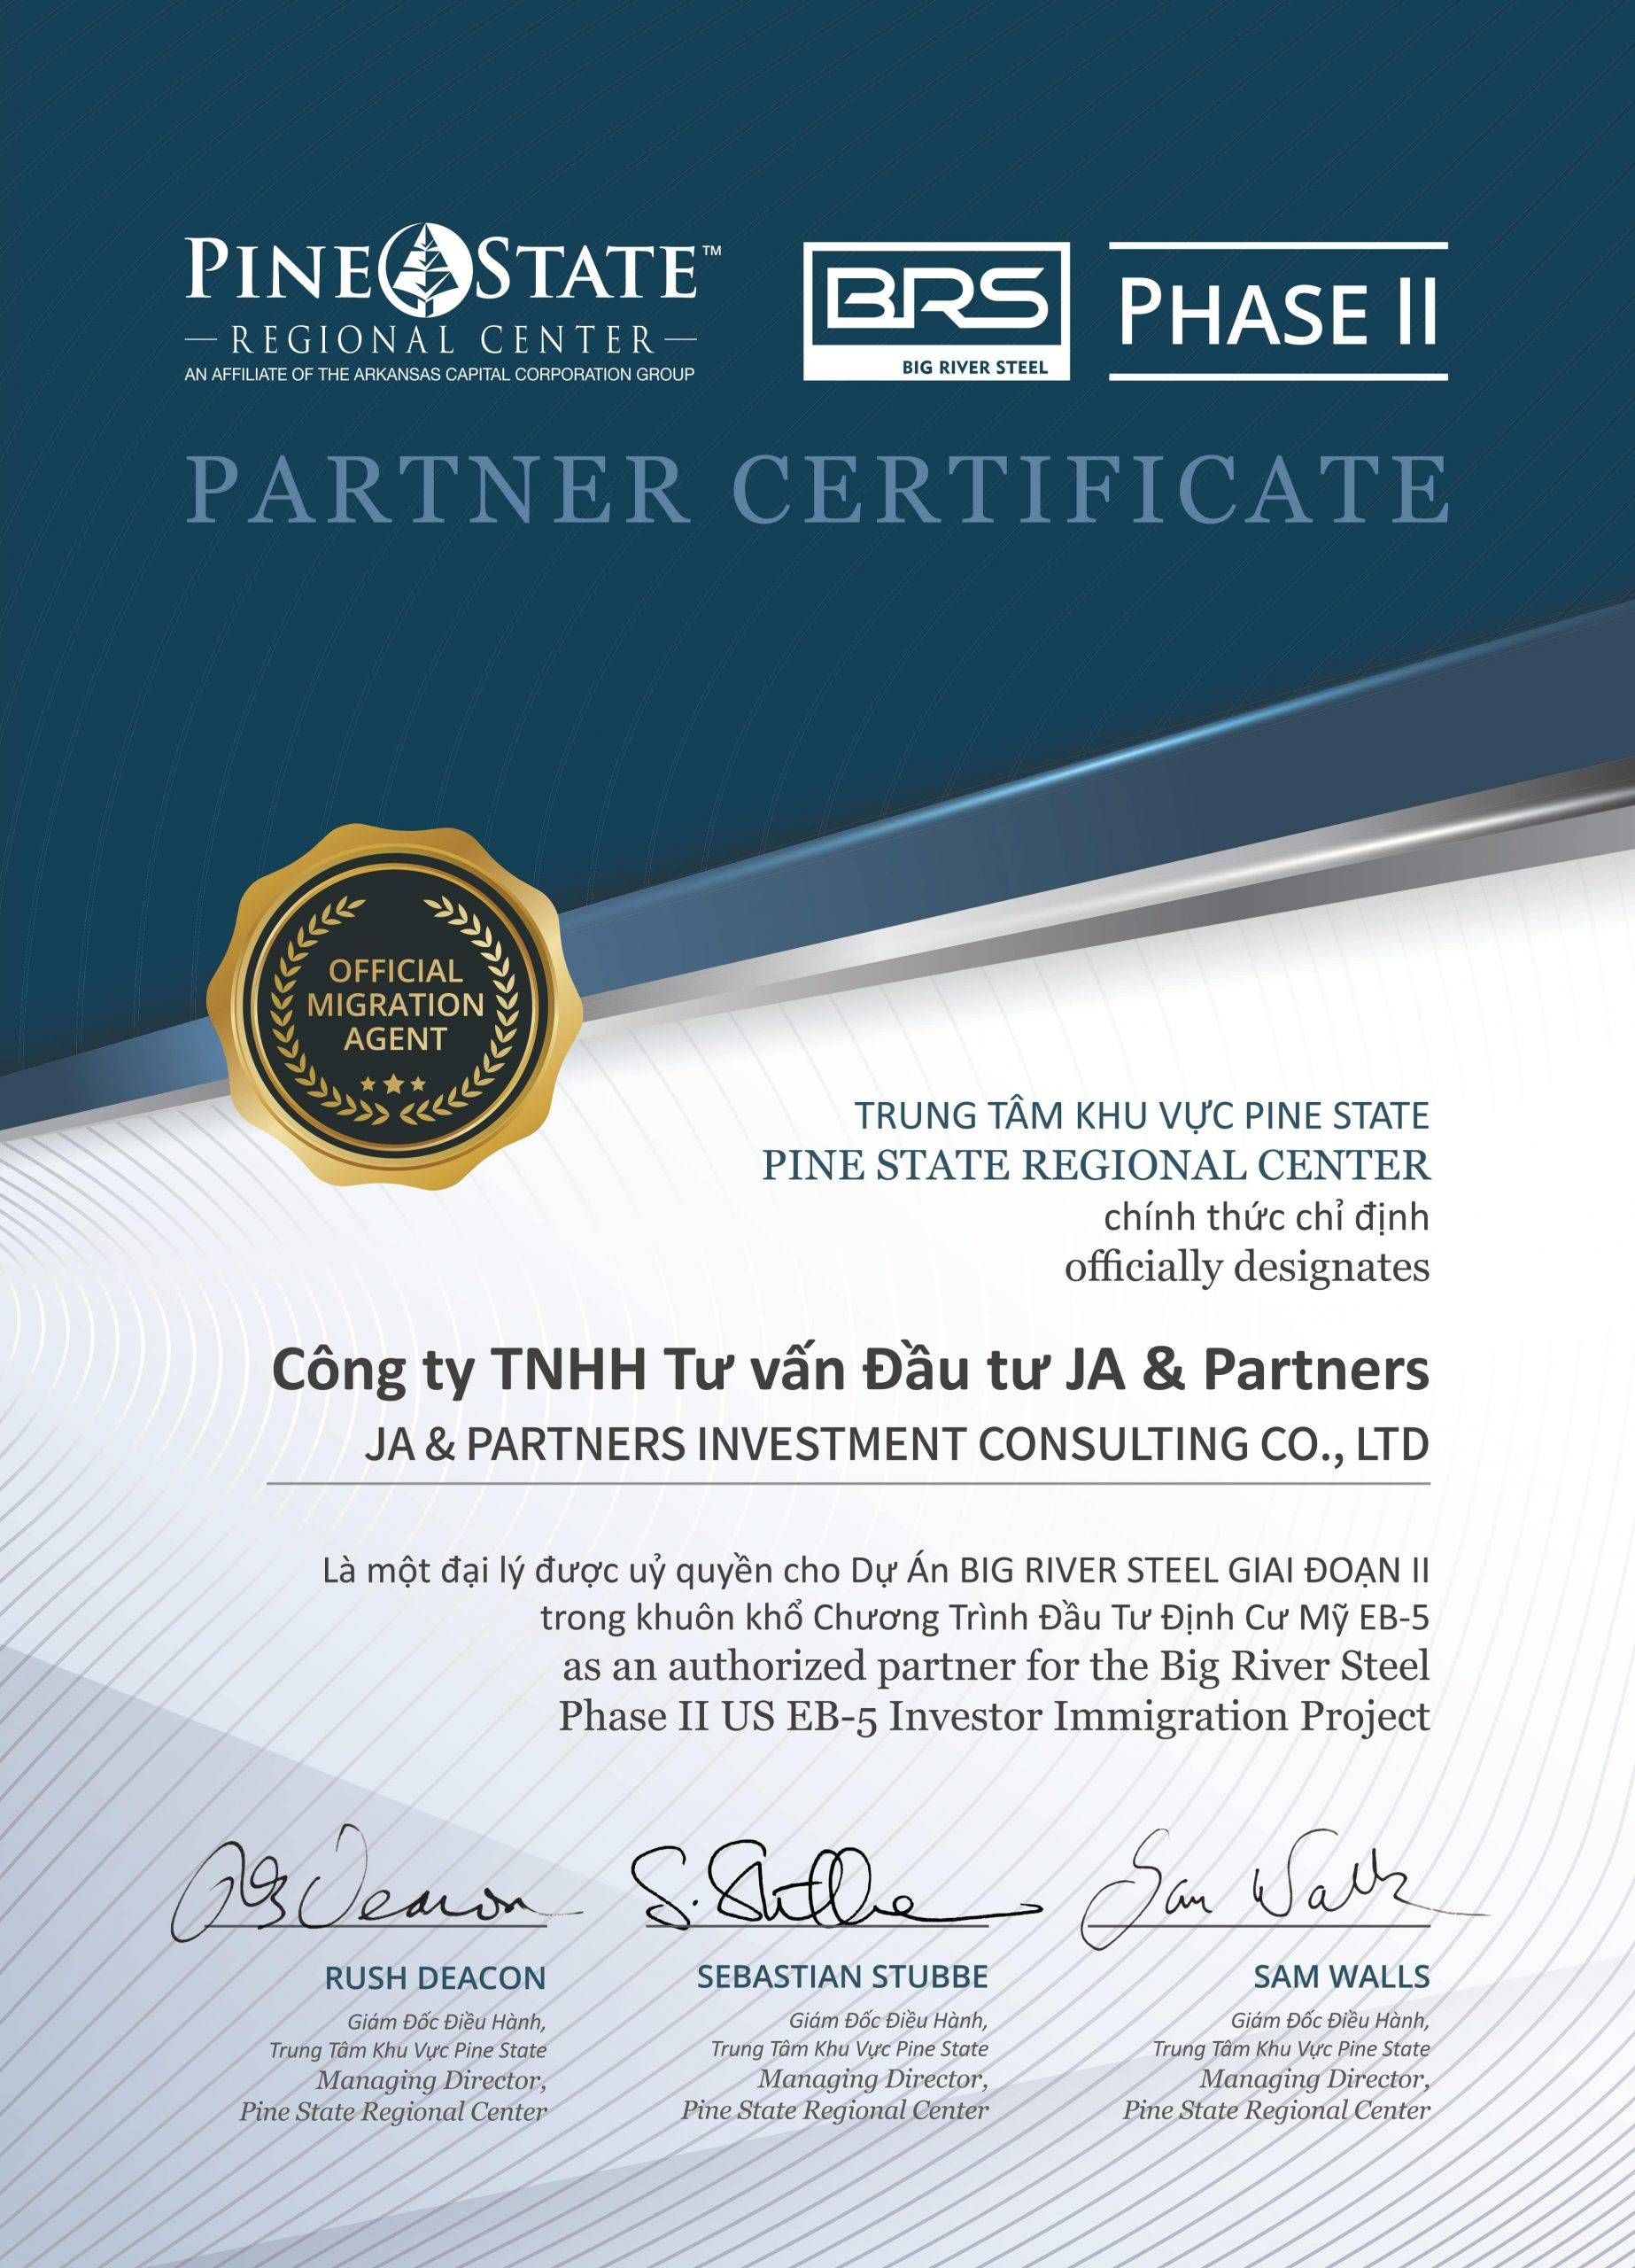 Partnership Certificate_JA & Partners 02 2020